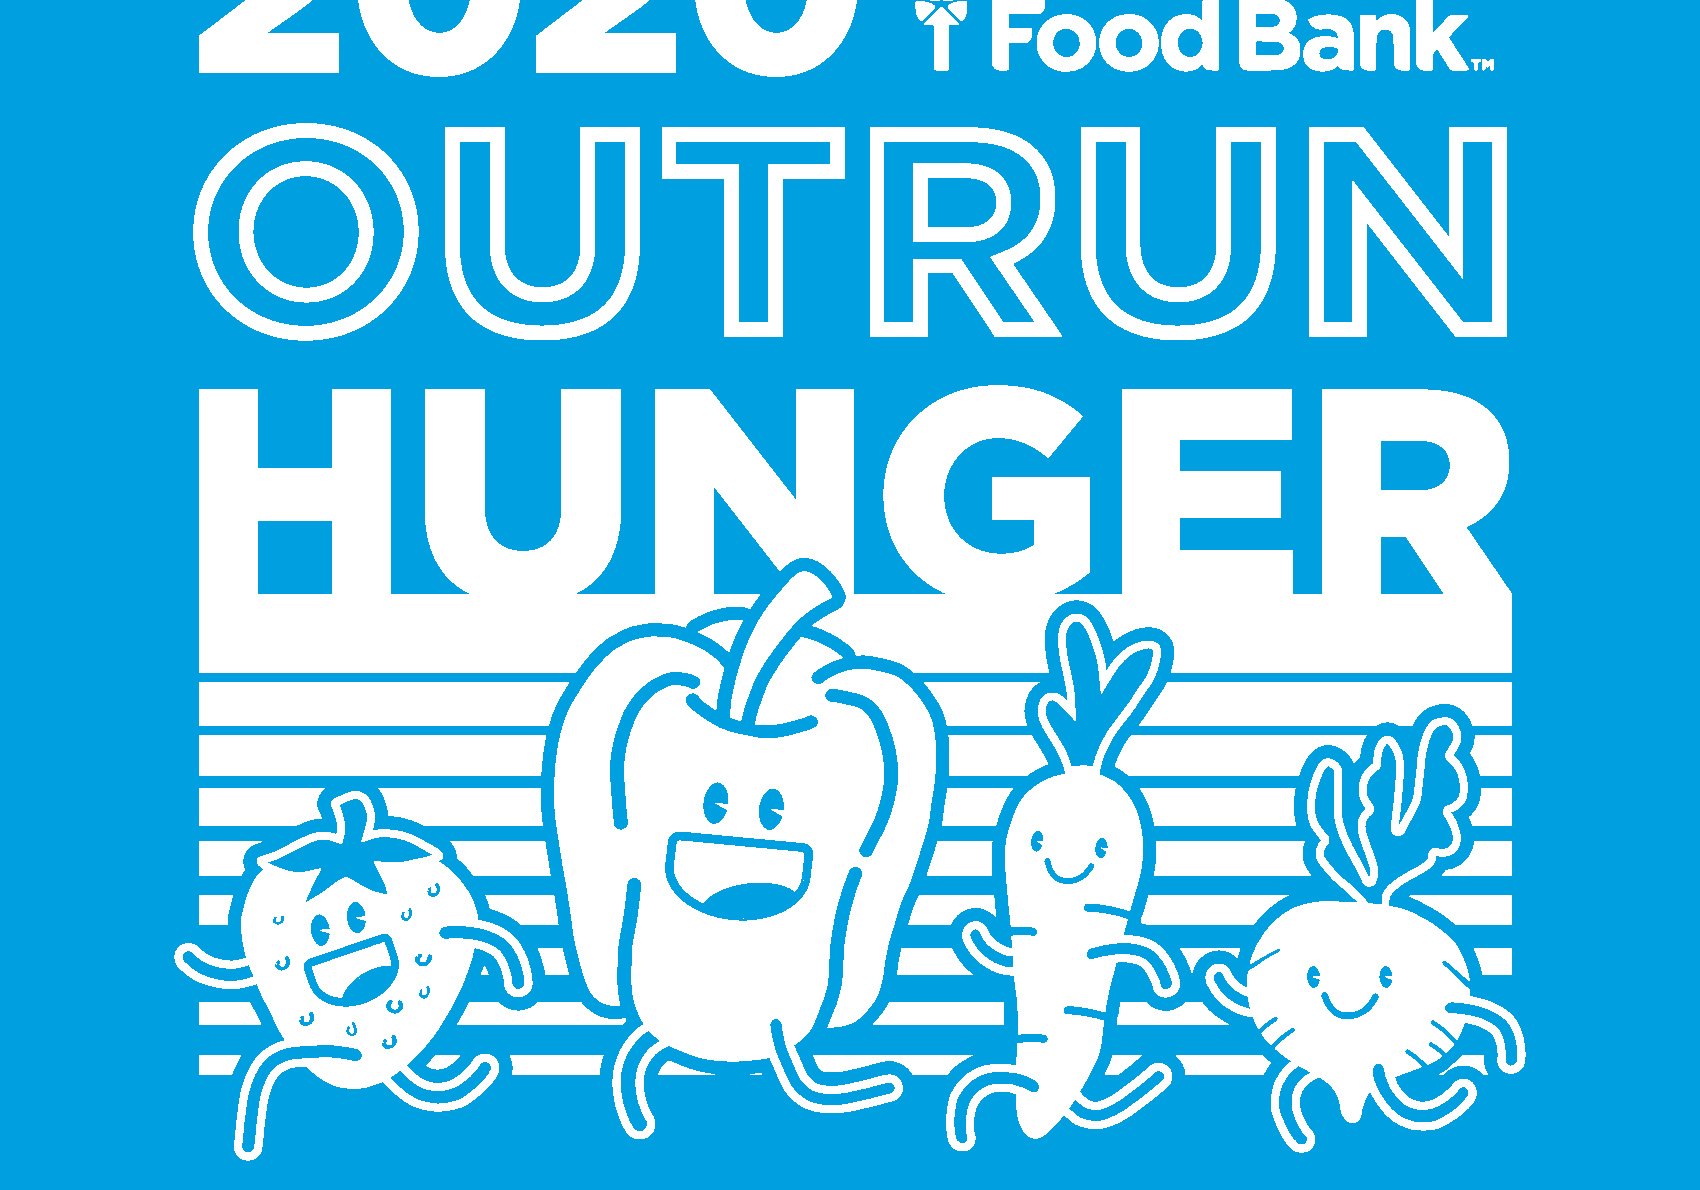 Out Run Hunger Logo Page 1 002